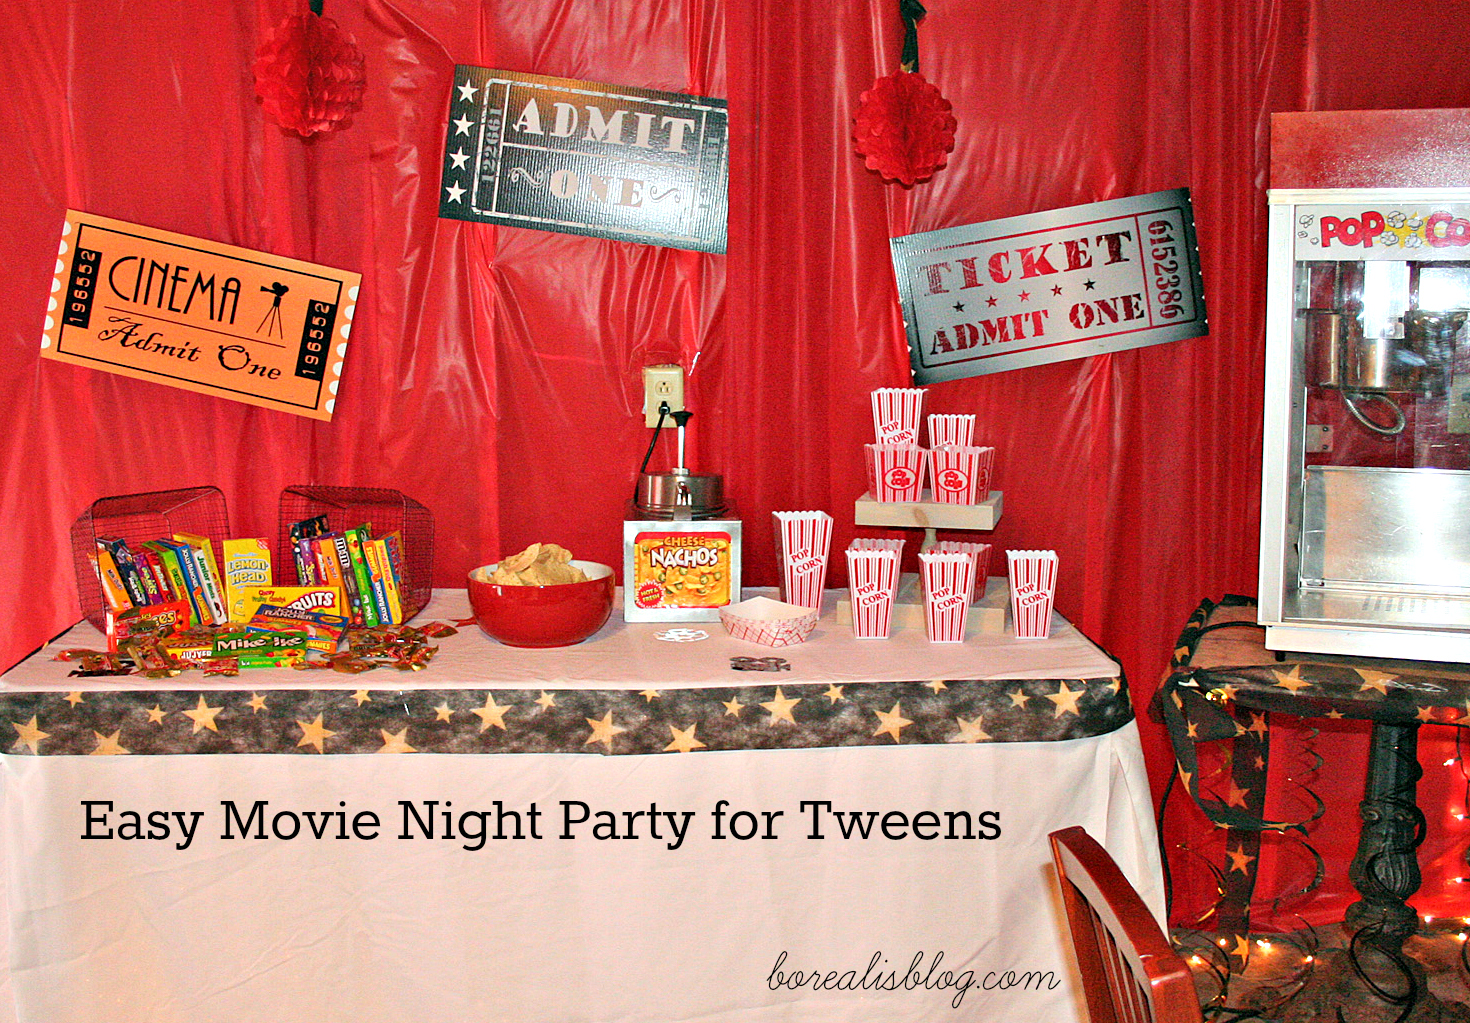 How To Have An Easy Movie Night Tween Party Borealis